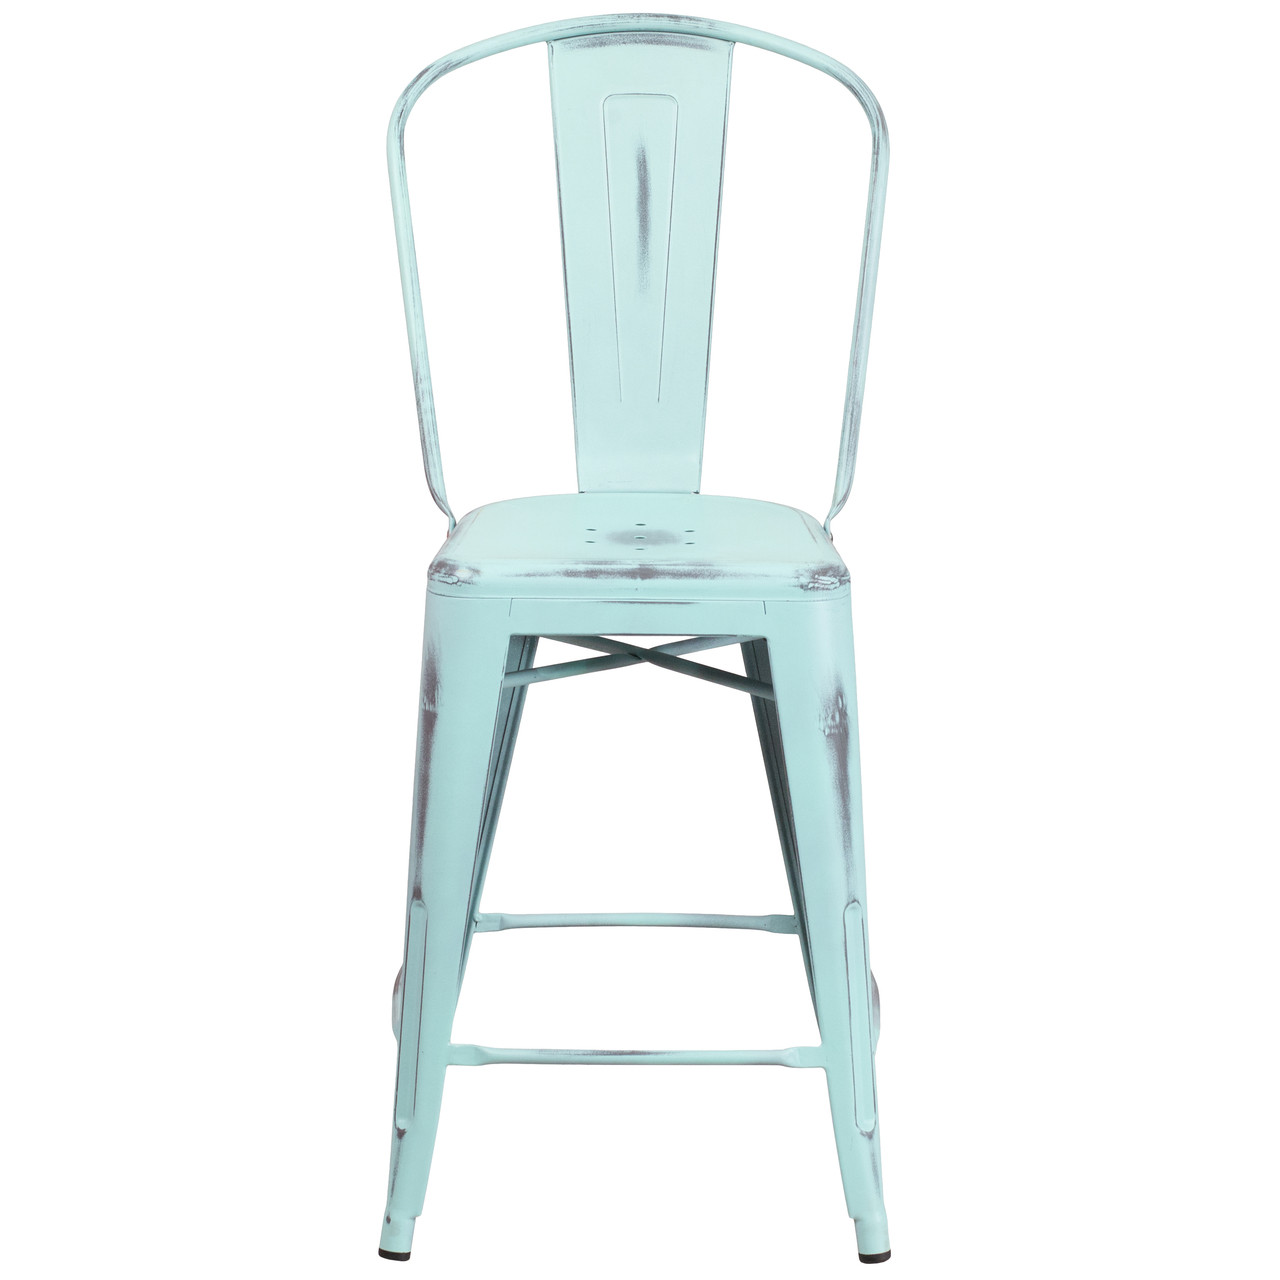 Magnificent Flash Furniture 24 High Distressed Green Blue Metal Indoor Outdoor Counter Height Stool With Back Squirreltailoven Fun Painted Chair Ideas Images Squirreltailovenorg